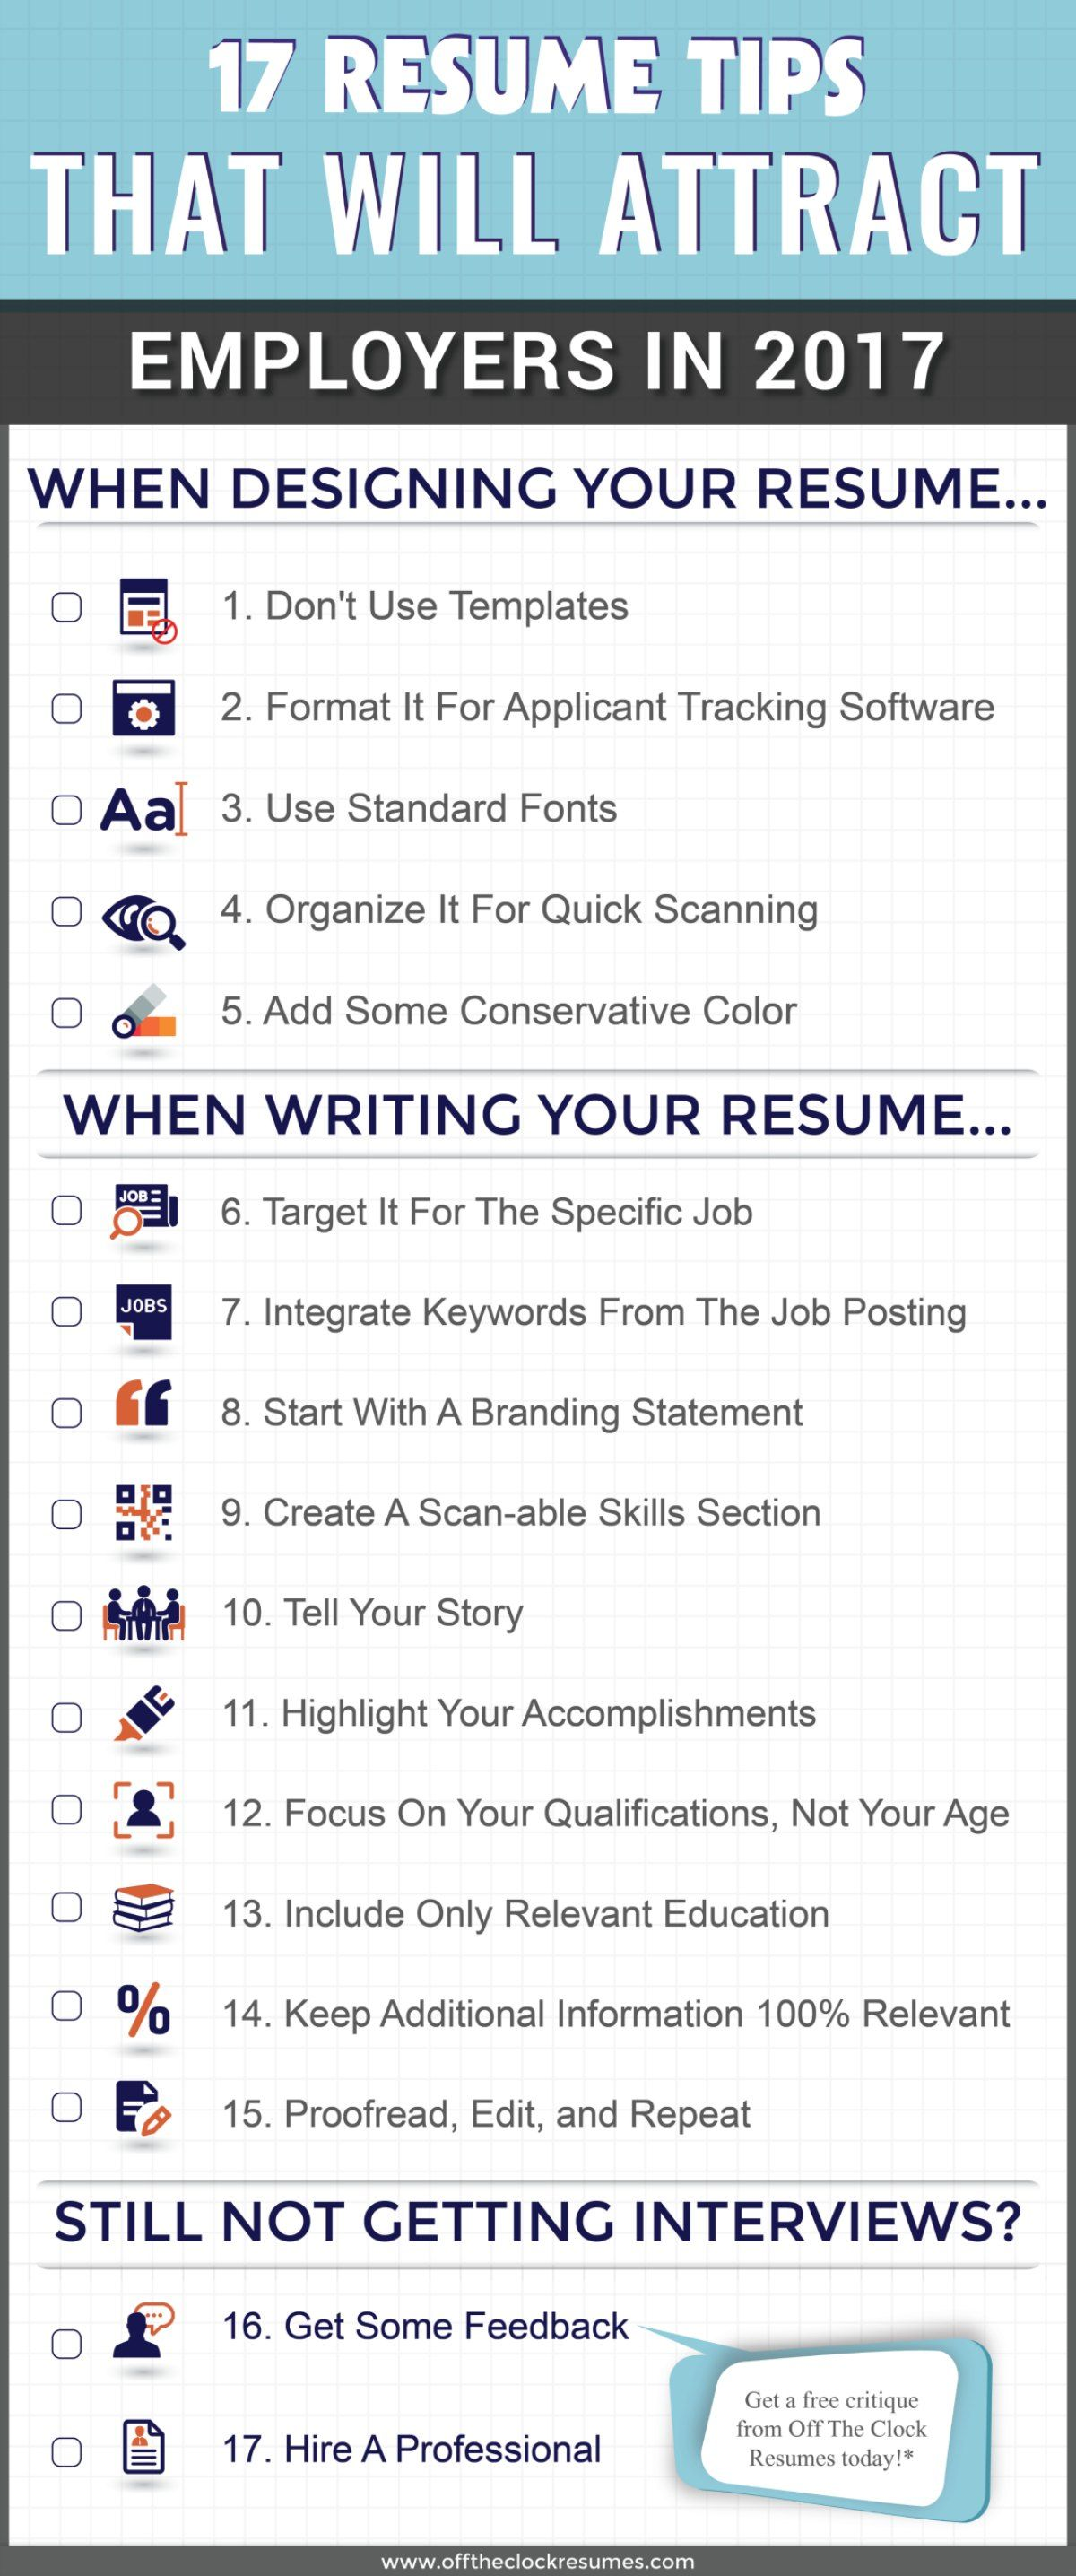 Keywords In Resume Custom 17 Resume Tips That Will Attract Employers In 2017 Infographic .